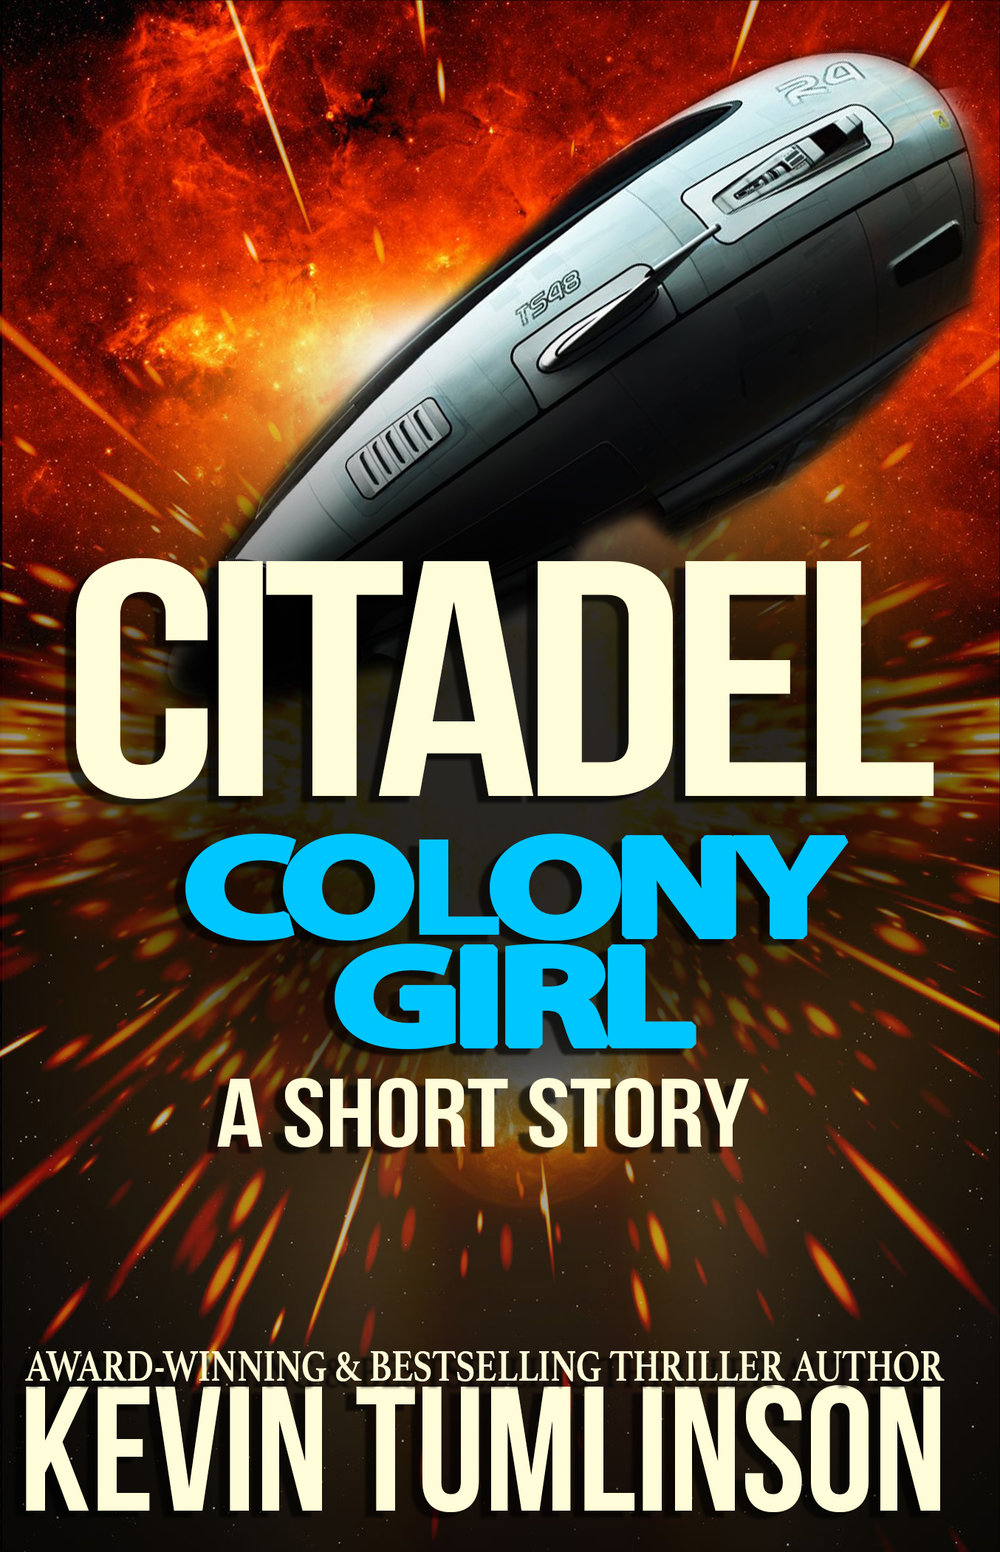 Colony Girl - A CITADEL UNIVERSE STORY